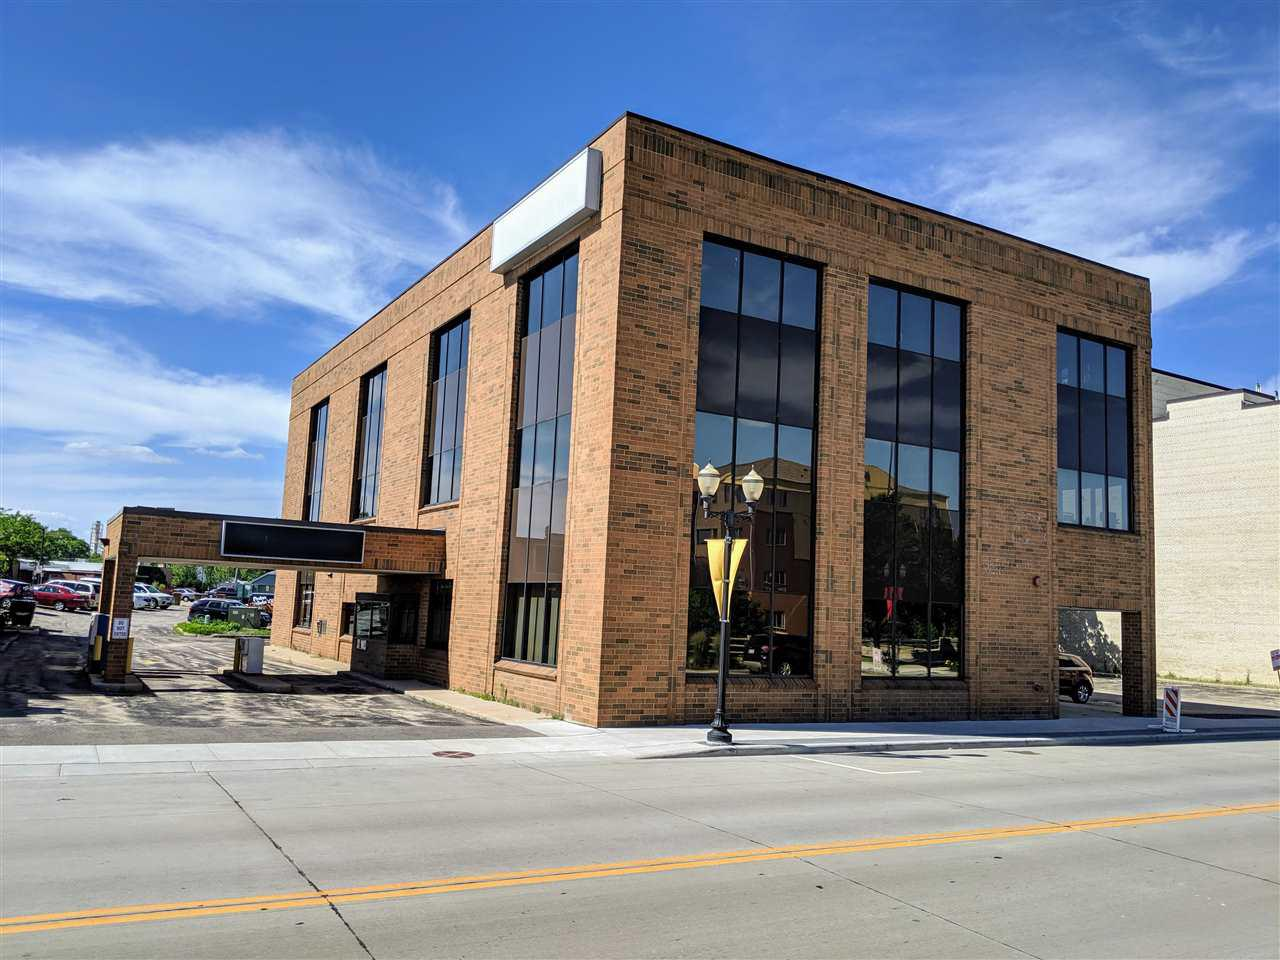 This all brick 3-story building in growing downtown Menasha provides space suitable for many types of business - restaurant, bakery, banking, office, retail, service, etc. Located near One Menasha Center and overlooking Menasha Marina offering excellent views. This highly visible property with a drive-thru is conveniently located with easy access to Highway 441. Spaces for lease: 1.)Suite 100(prior bank with drive-thru): 2,300sf, 2.)Suite 103: 380sf, 3.)Suite 301: 1,075sf, 4.)Suite 302: 867sf